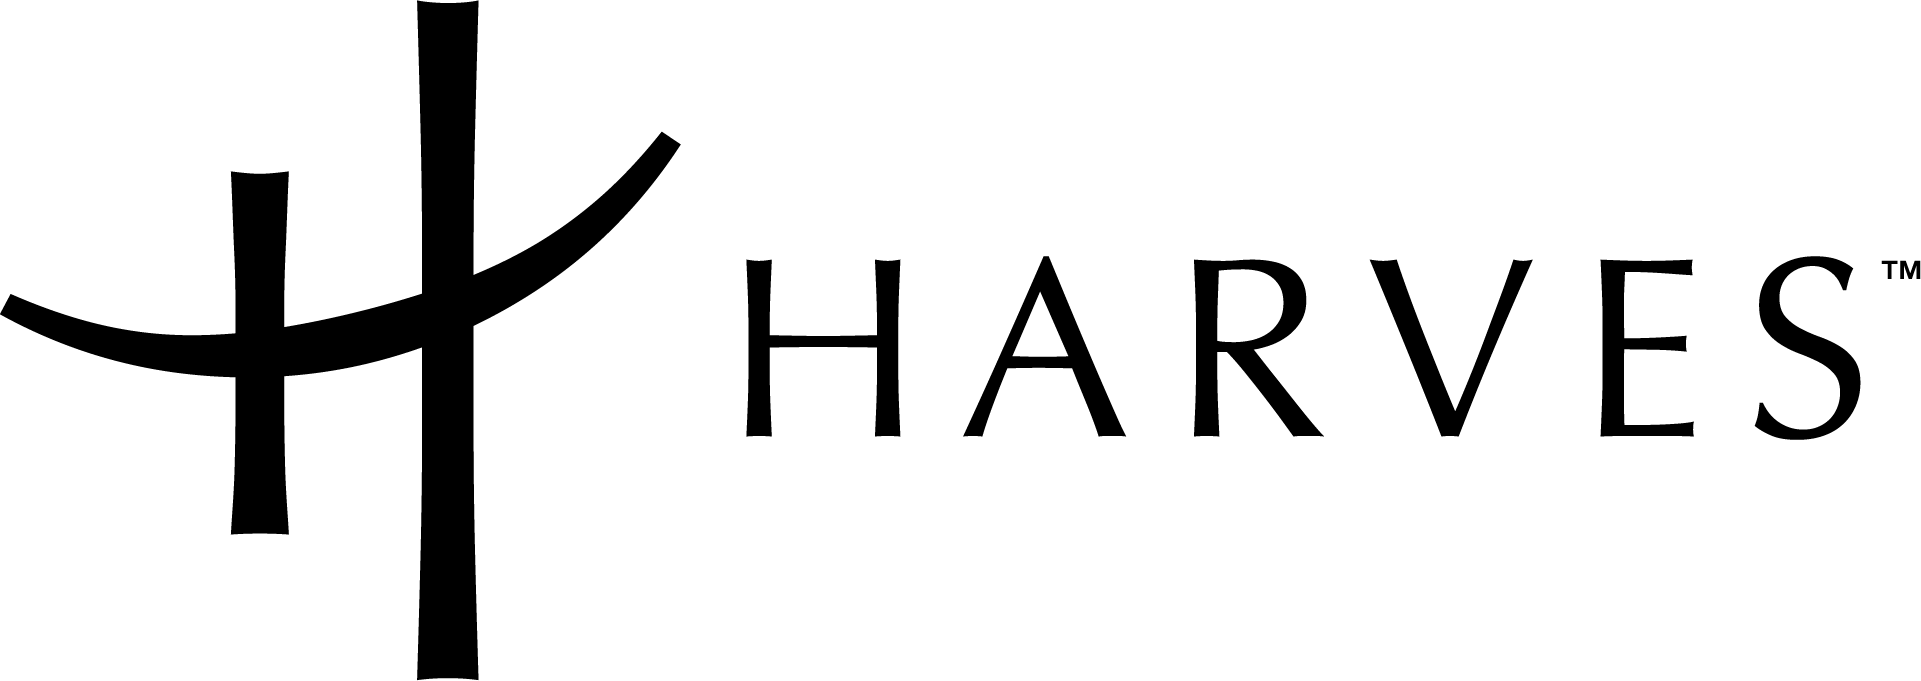 파일:Harves_logo.png